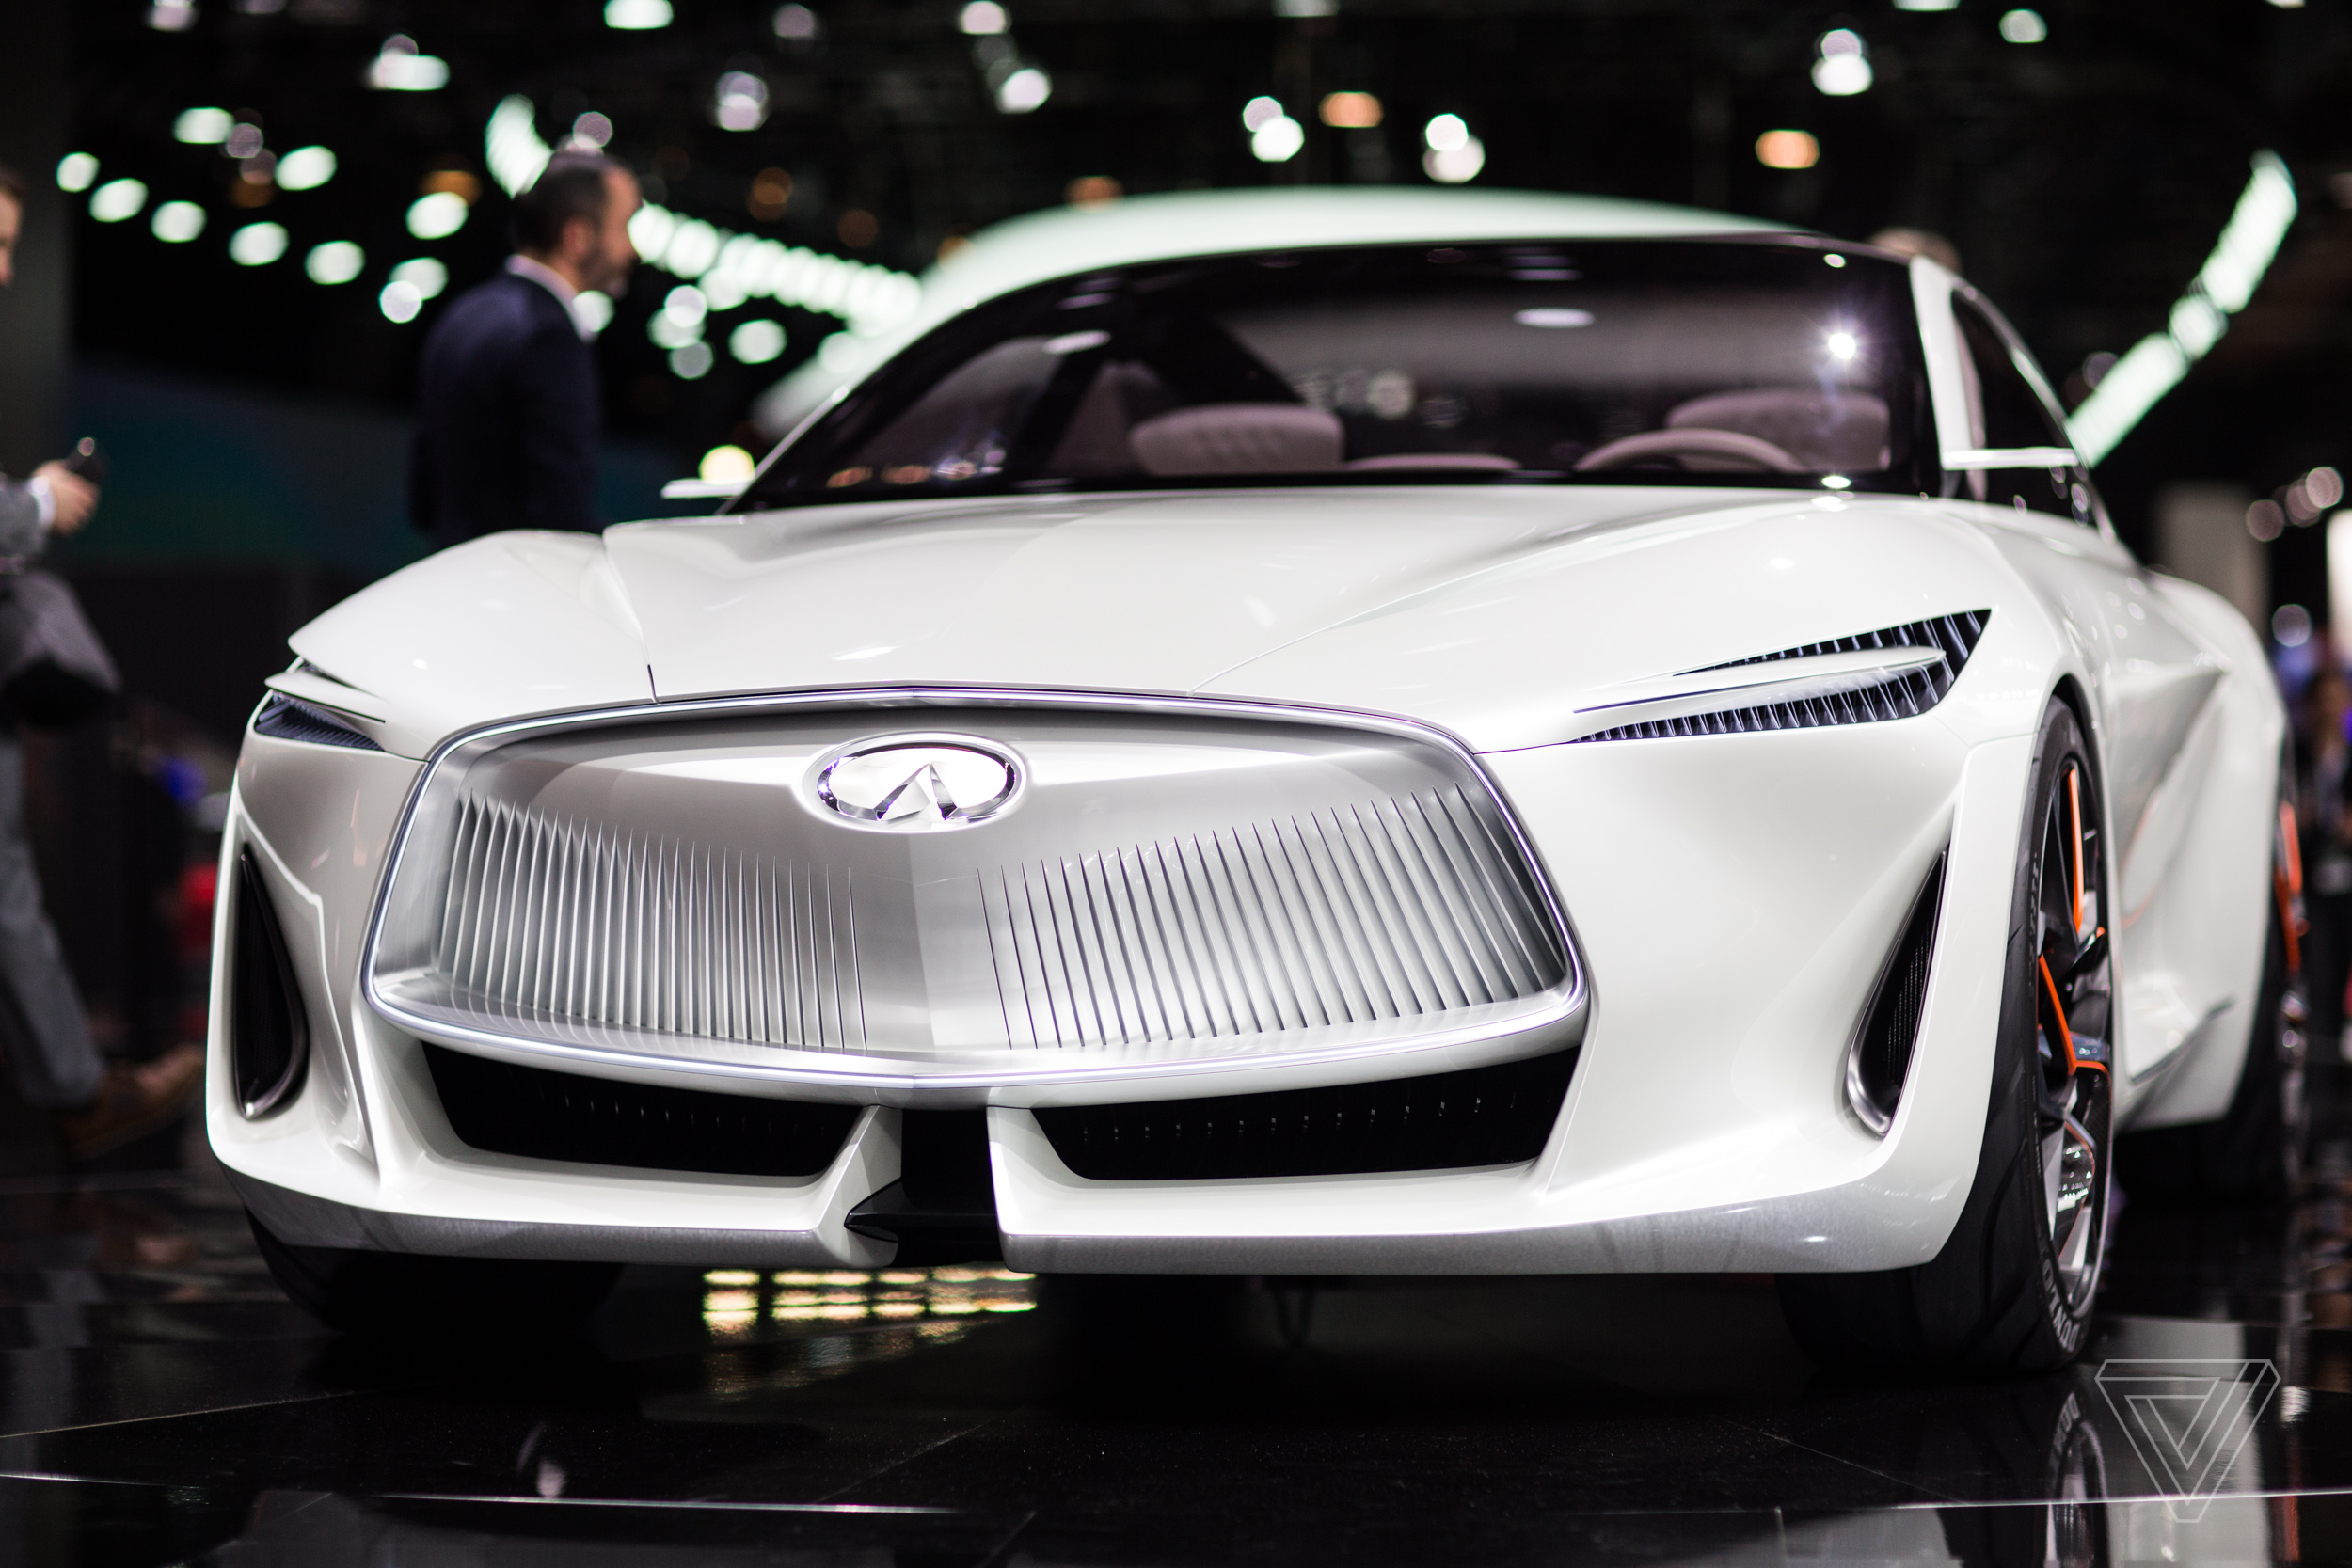 infiniti s new concept car is a land yacht for movie villains the verge. Black Bedroom Furniture Sets. Home Design Ideas